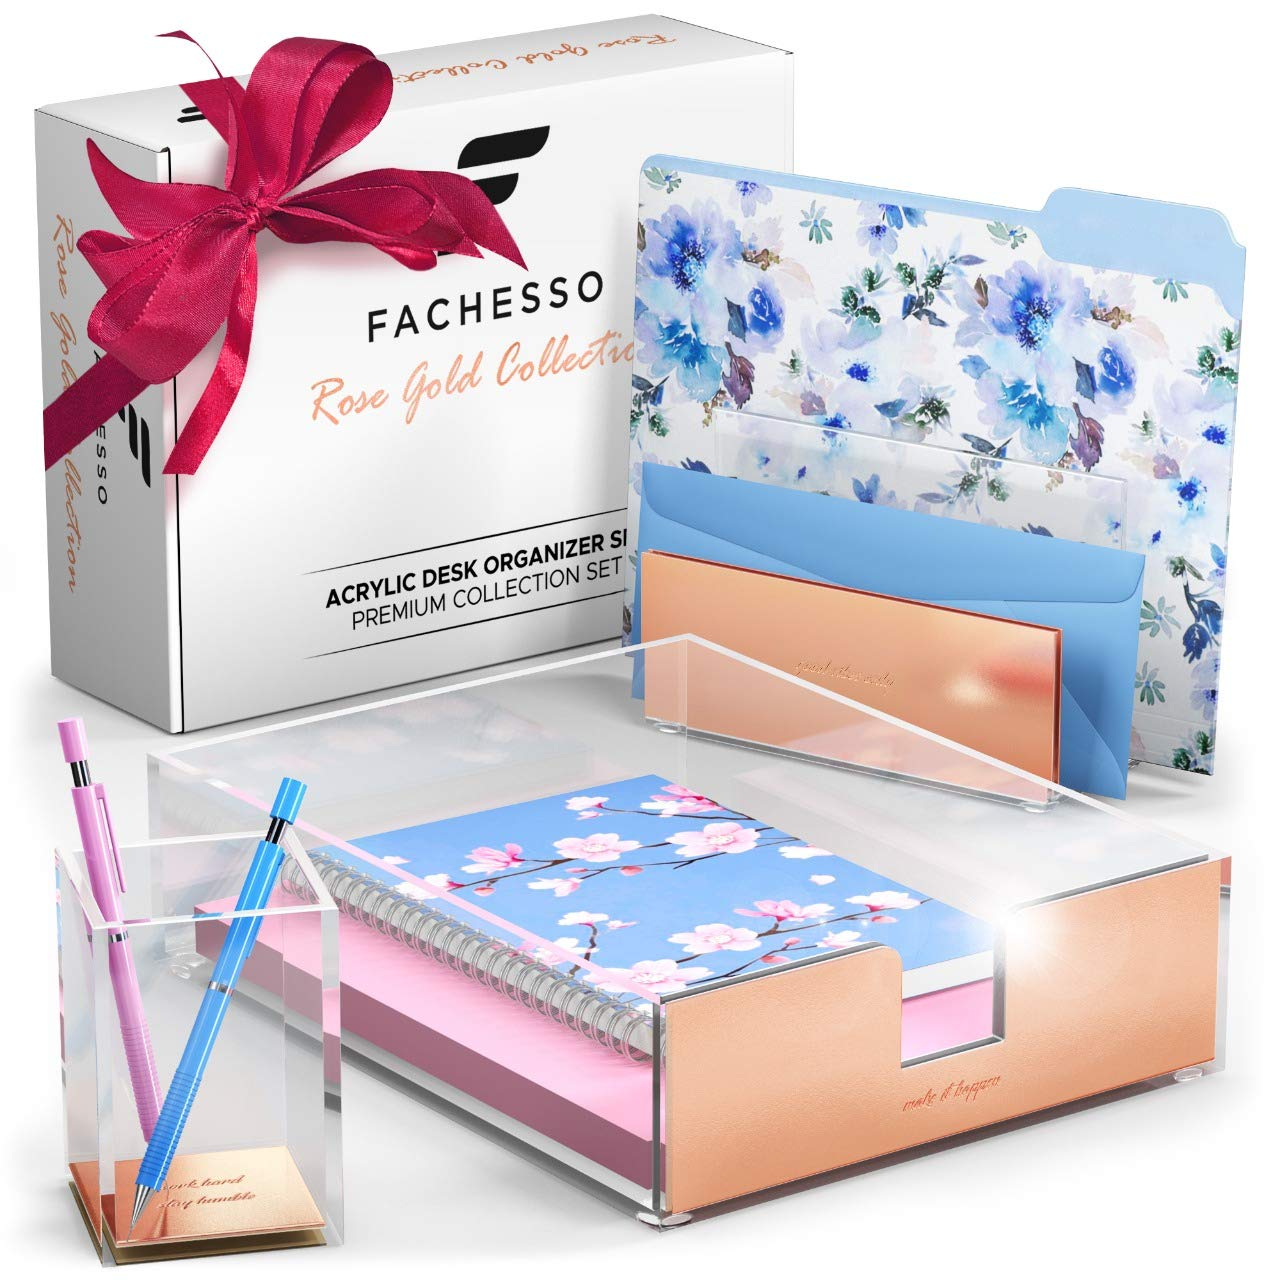 Rose Gold Desk Organizer: 3 Piece Acrylic Desk Organizer Set with Pen Holder, Letter Sorter, Paper Tray - Rose Gold Desk Accessories for Women, Girls - Cute Office Supplies, Decor for Cubicle and Home